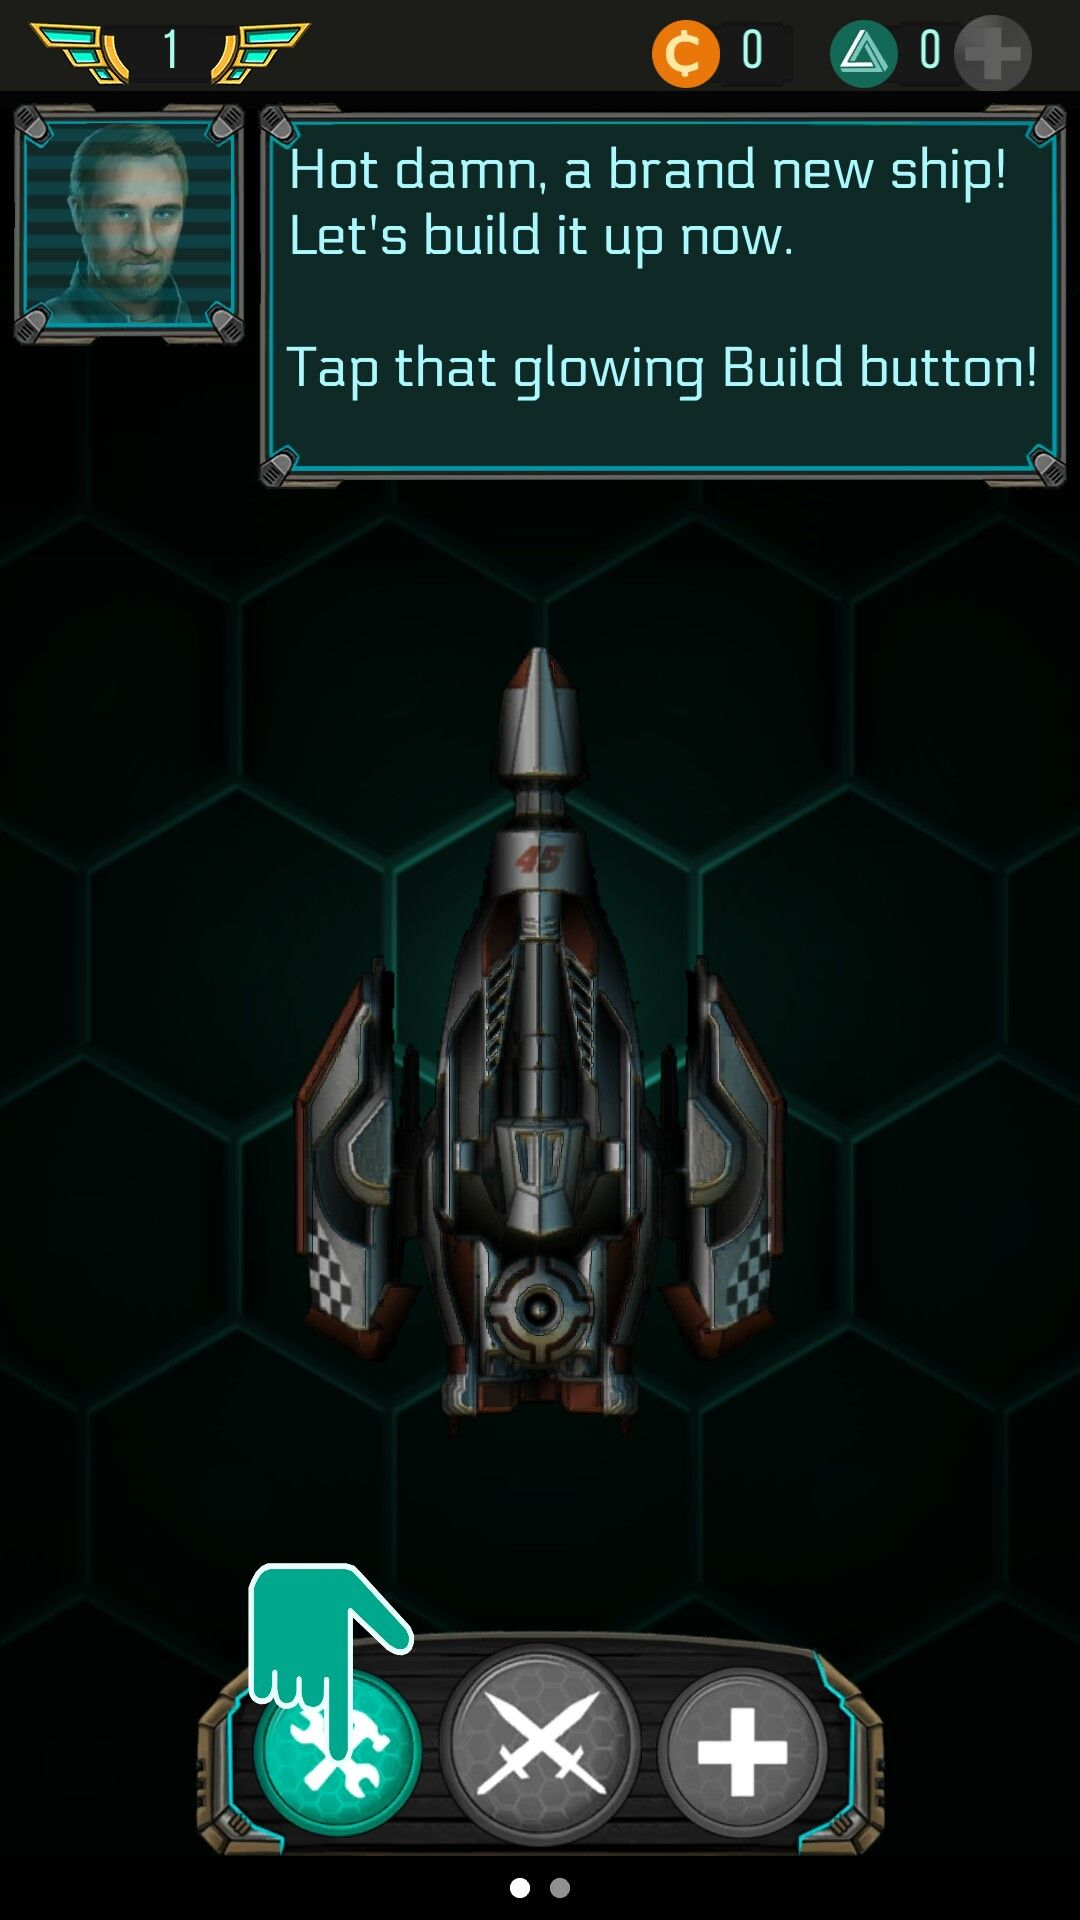 Space arena top down android game tutorial scififuturistic space arena top down android game tutorial baditri Choice Image